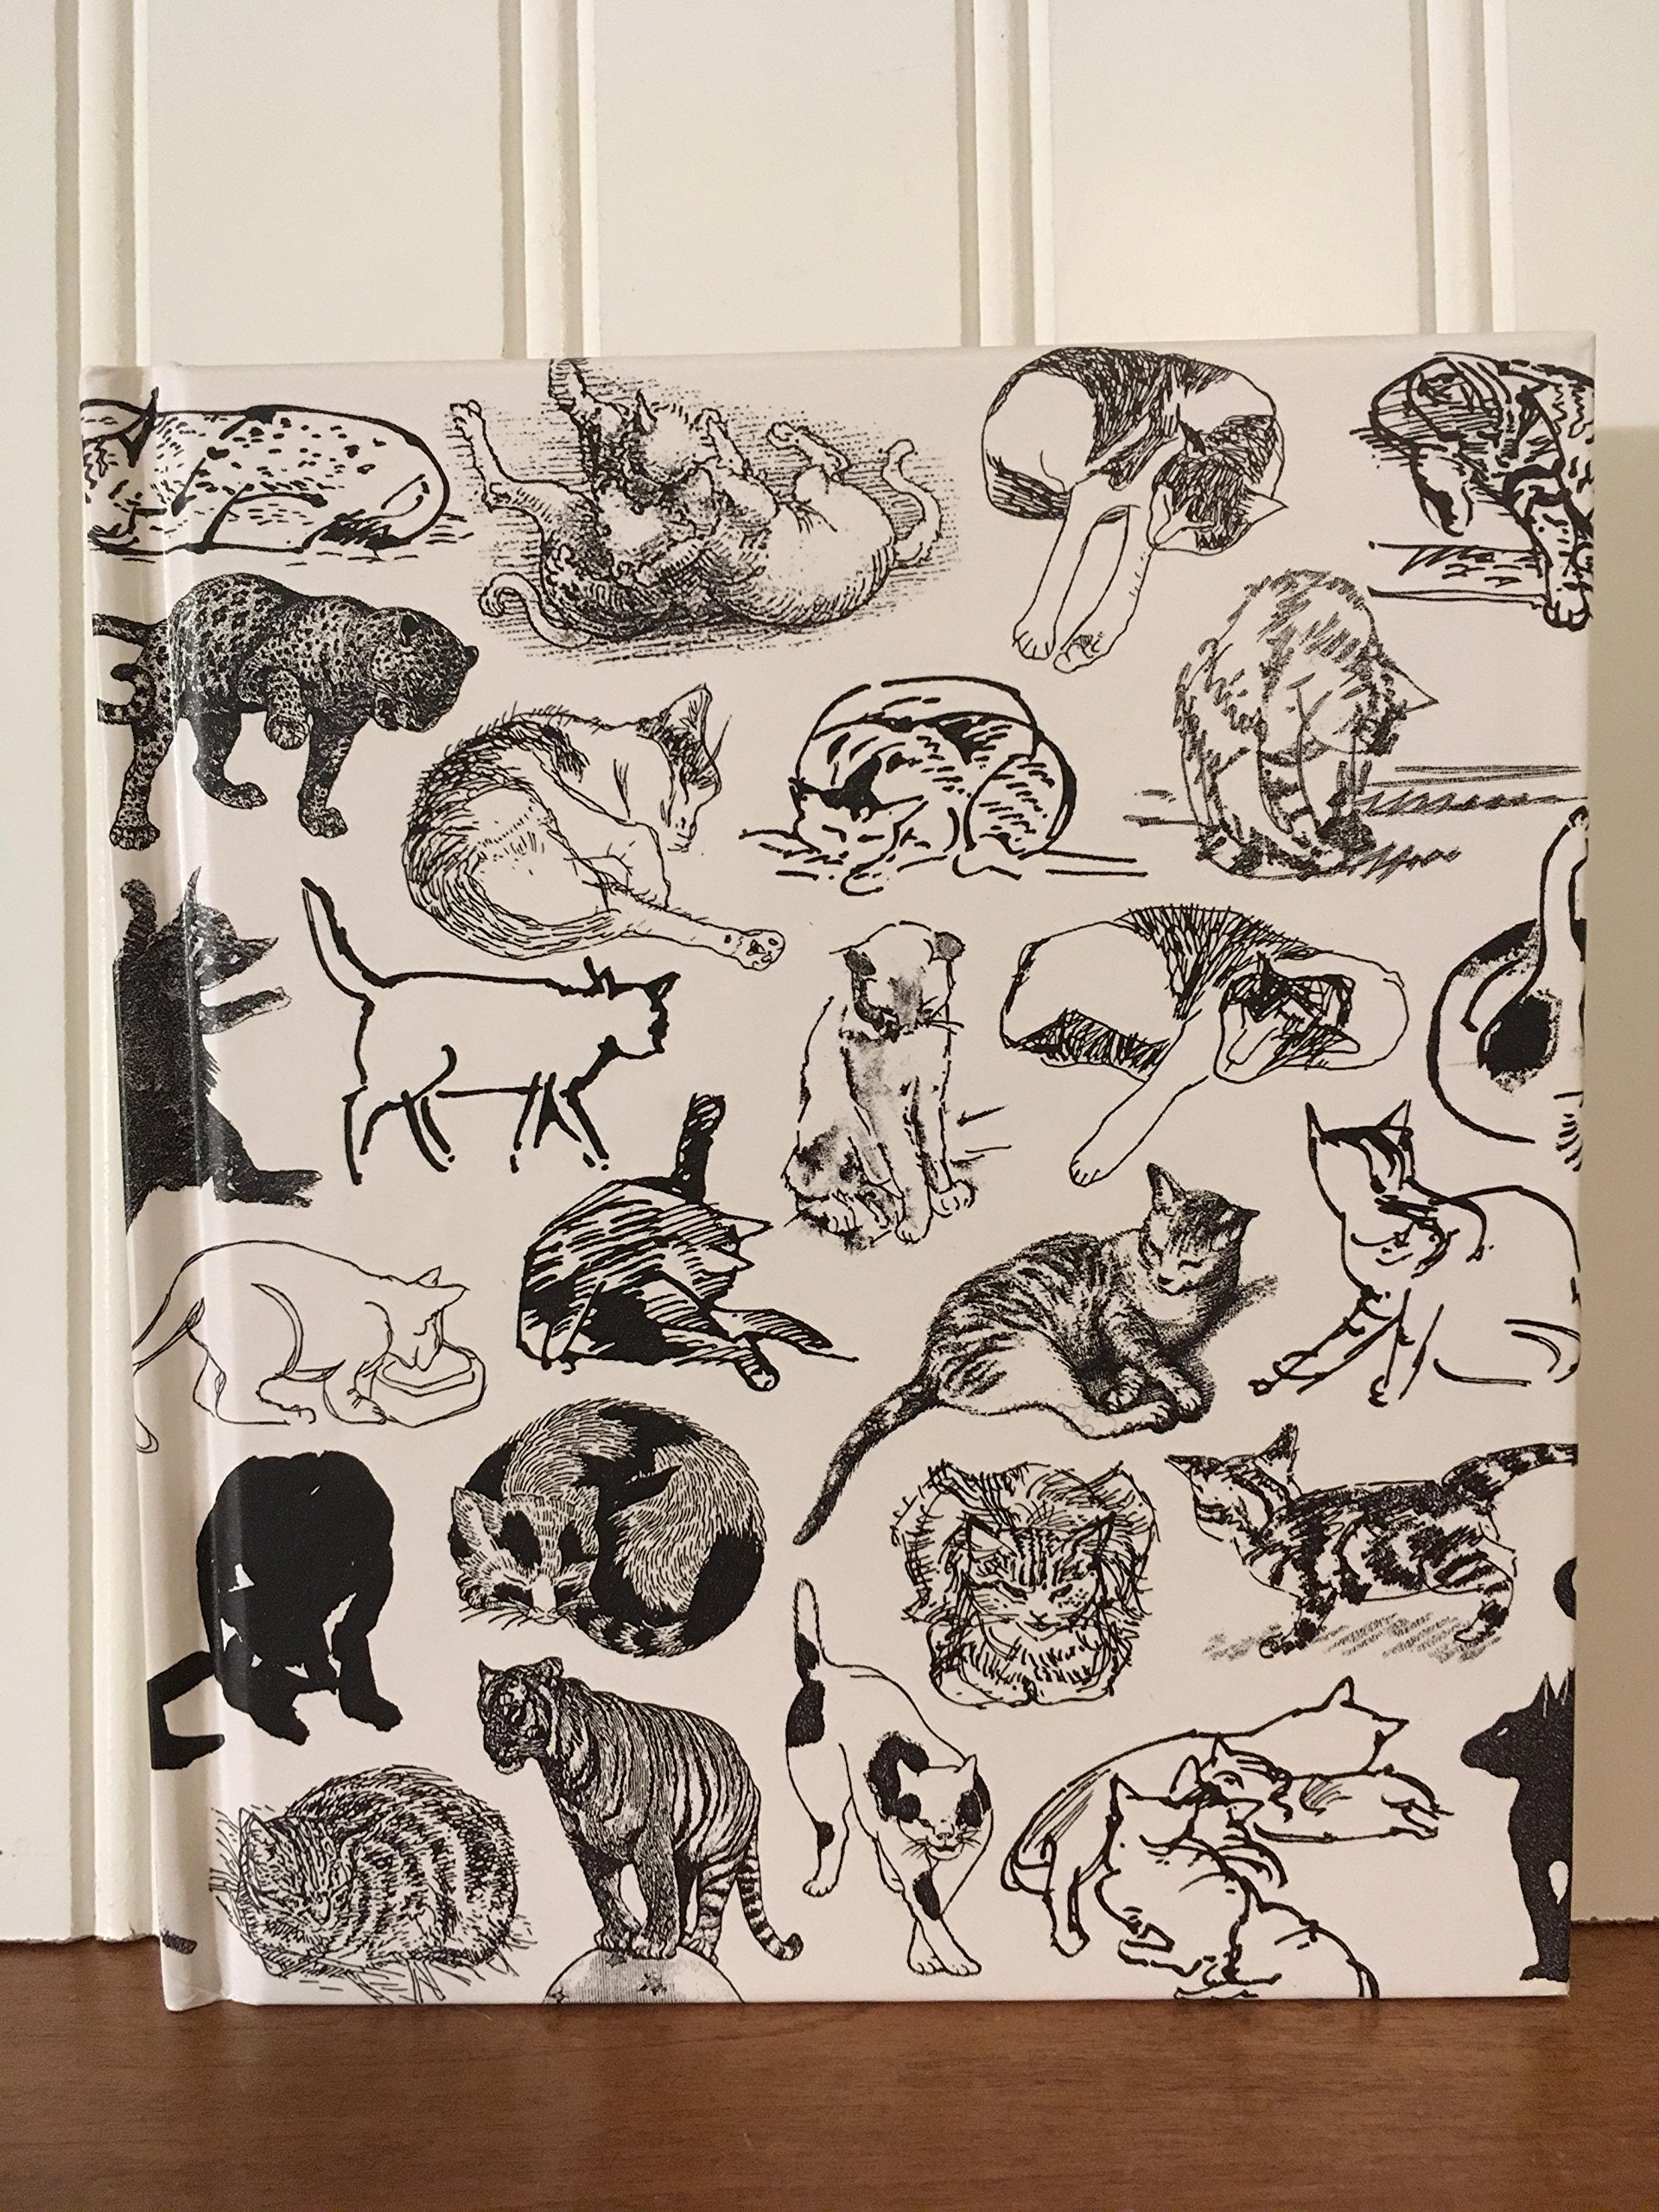 Ways of Drawing Cats: A Guide to Expanding Your Visual Awareness